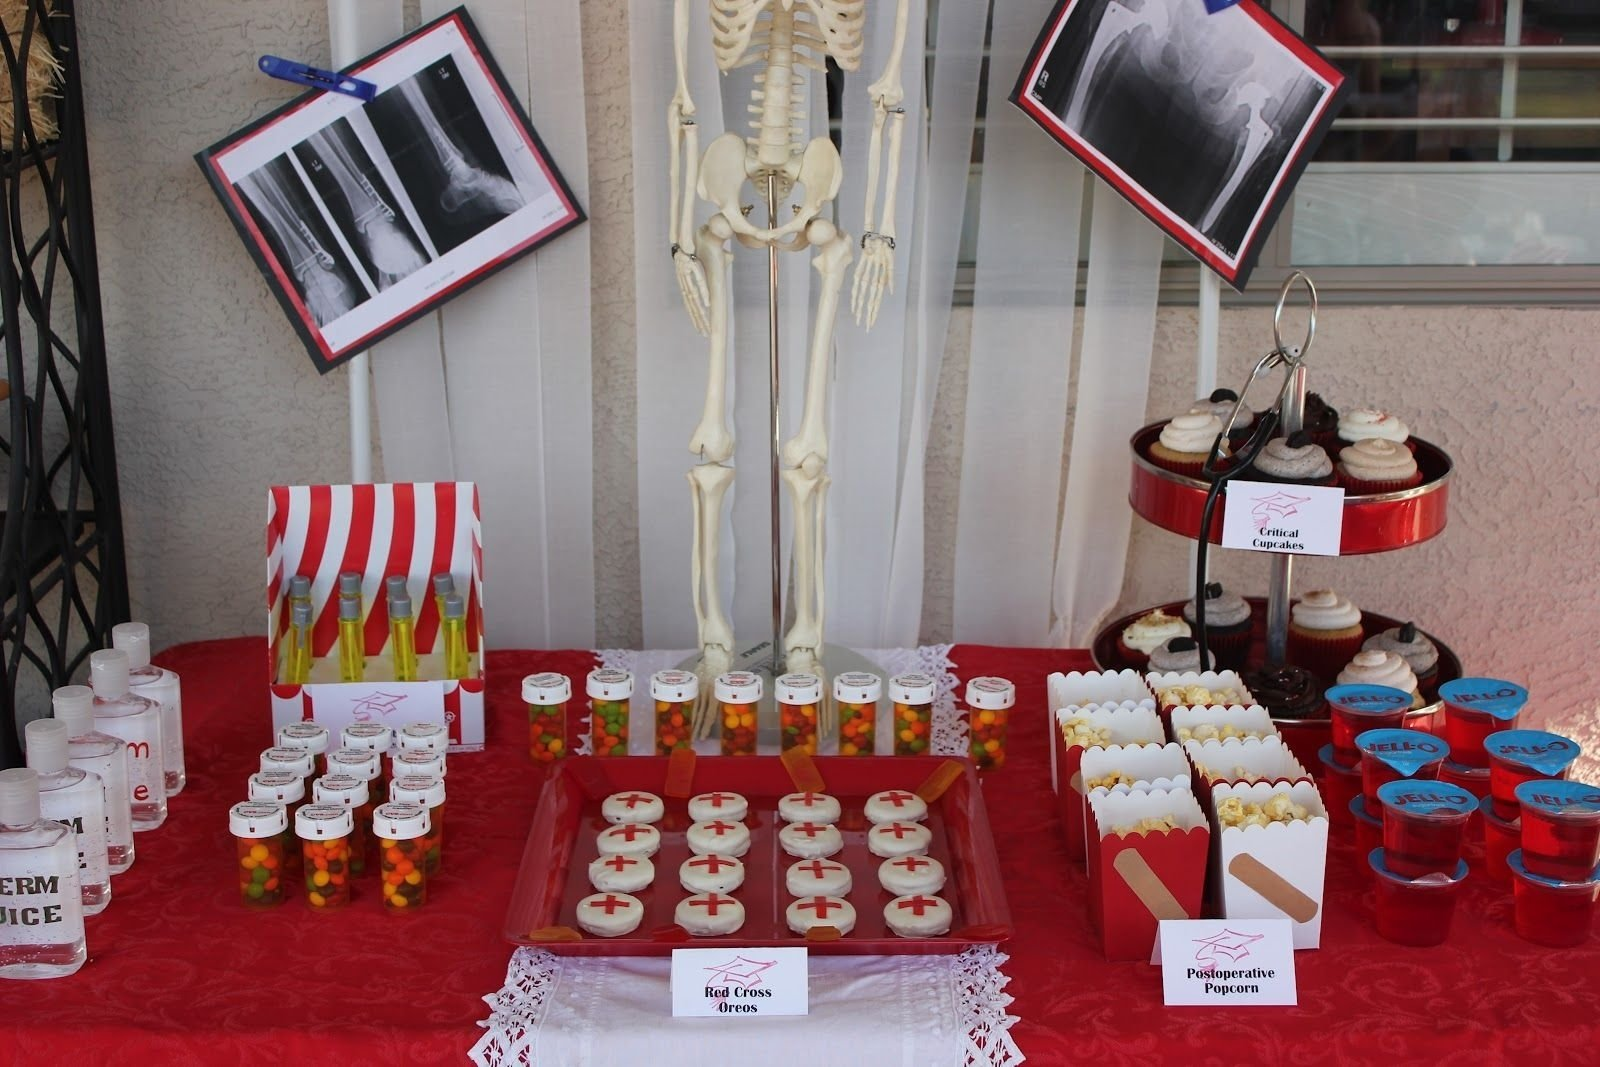 10 Cute Medical School Graduation Party Ideas graduation beach party decorations recipes to try pinterest 2020